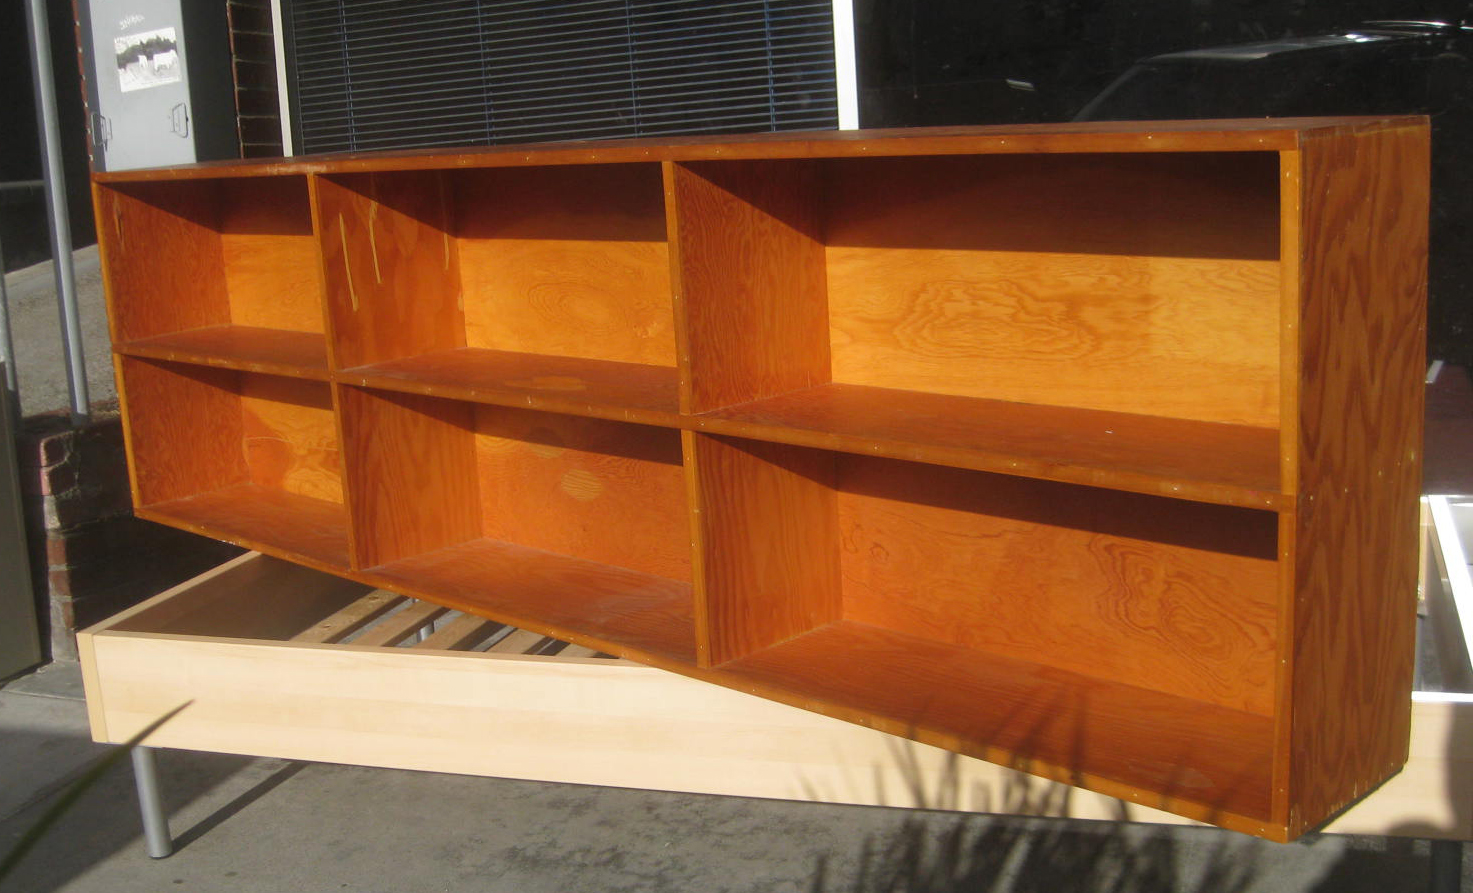 Low And Long Bookshelf